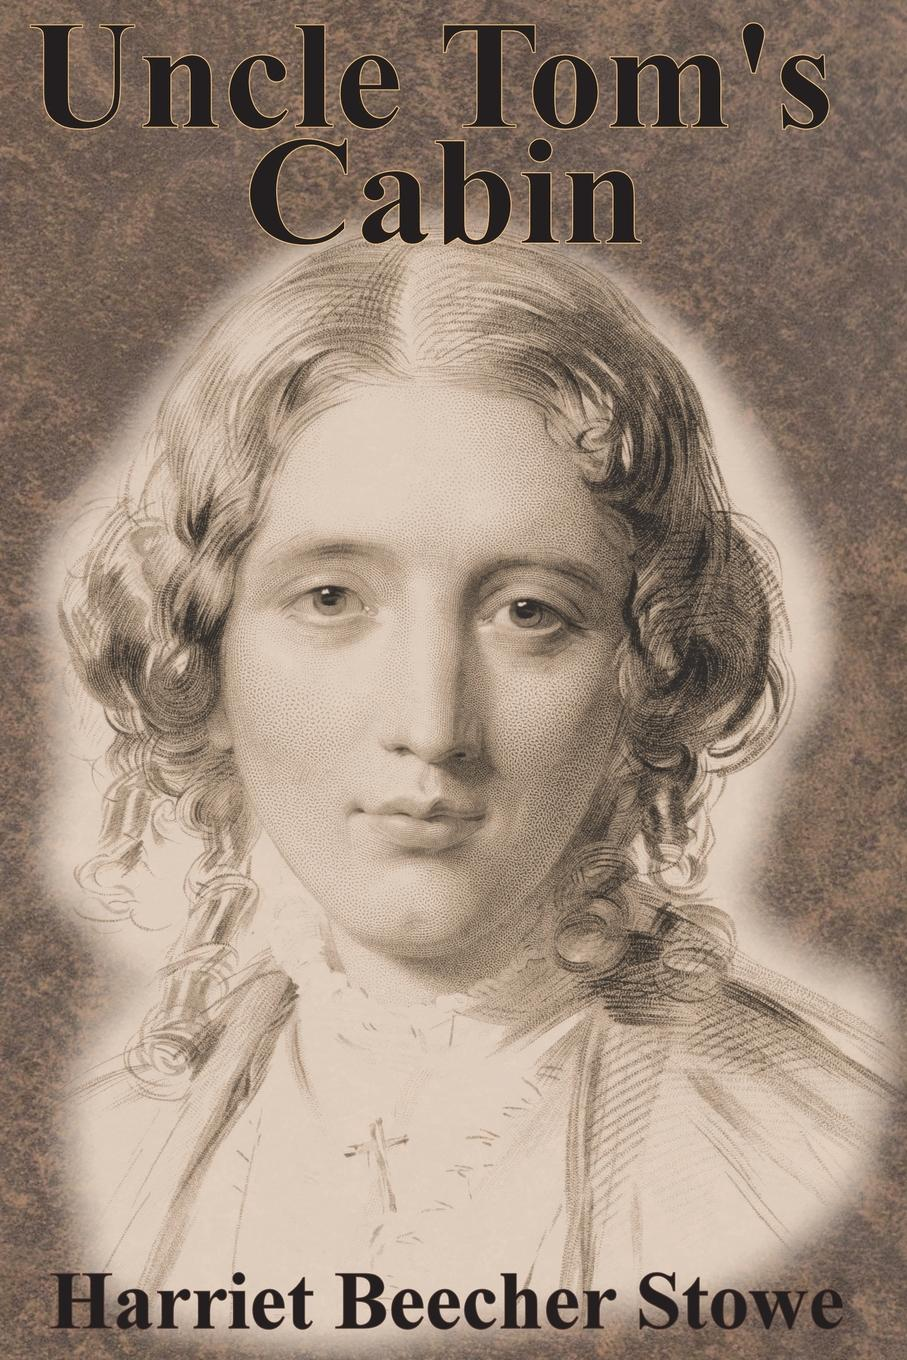 Harriet Beecher Stowe Uncle Tom.s Cabin tom butler bowdon the republic the influential classic isbn 9780857083272